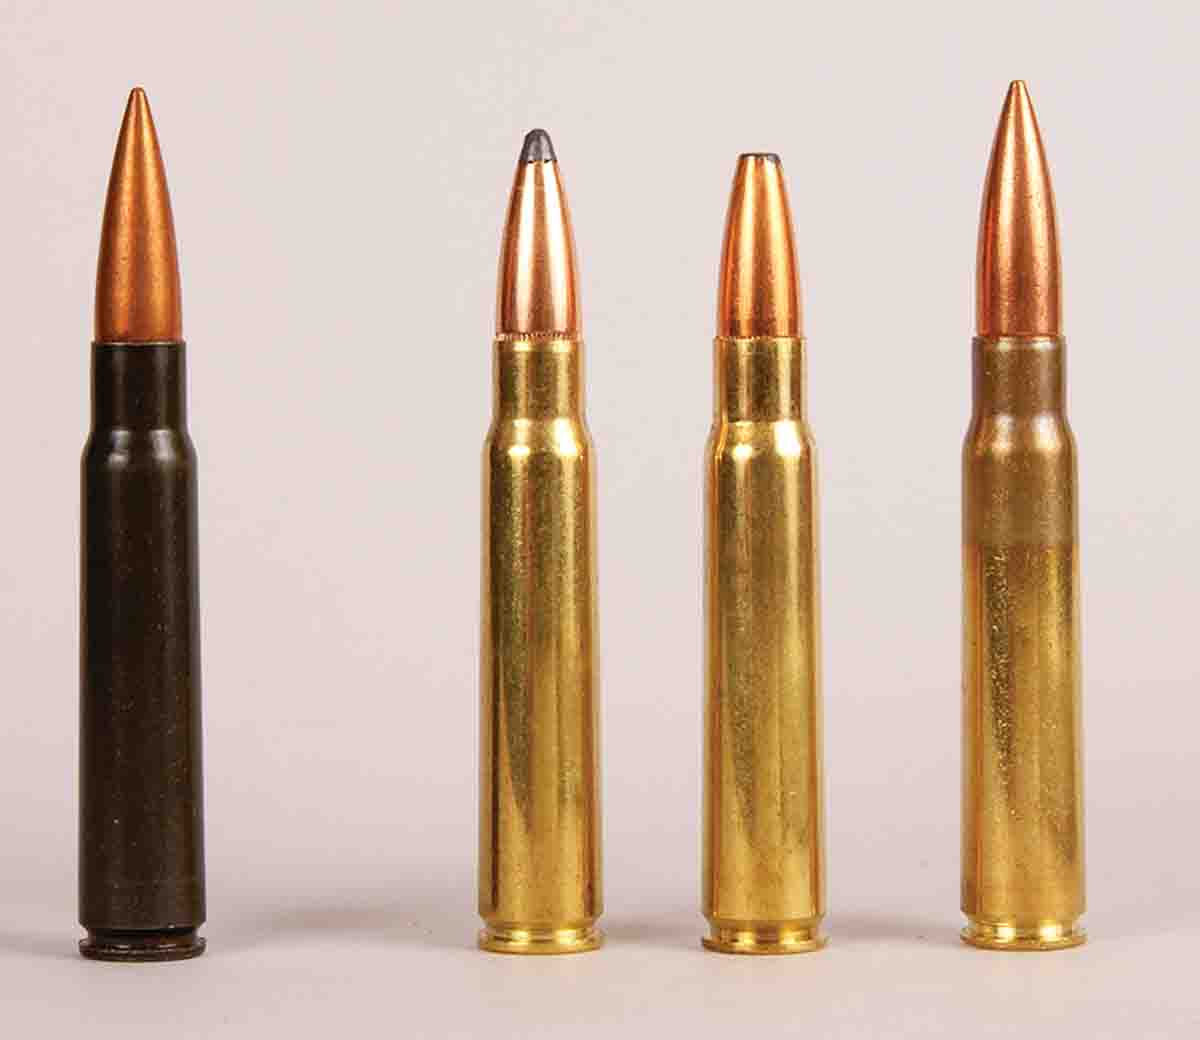 These cartridges include (left to right): an original German military round, a Hornady 195-grain Spire Point factory load, a Norma 196-grain softpoint factory load and a Mitchell's Mausers 198-grain FMJ factory load.